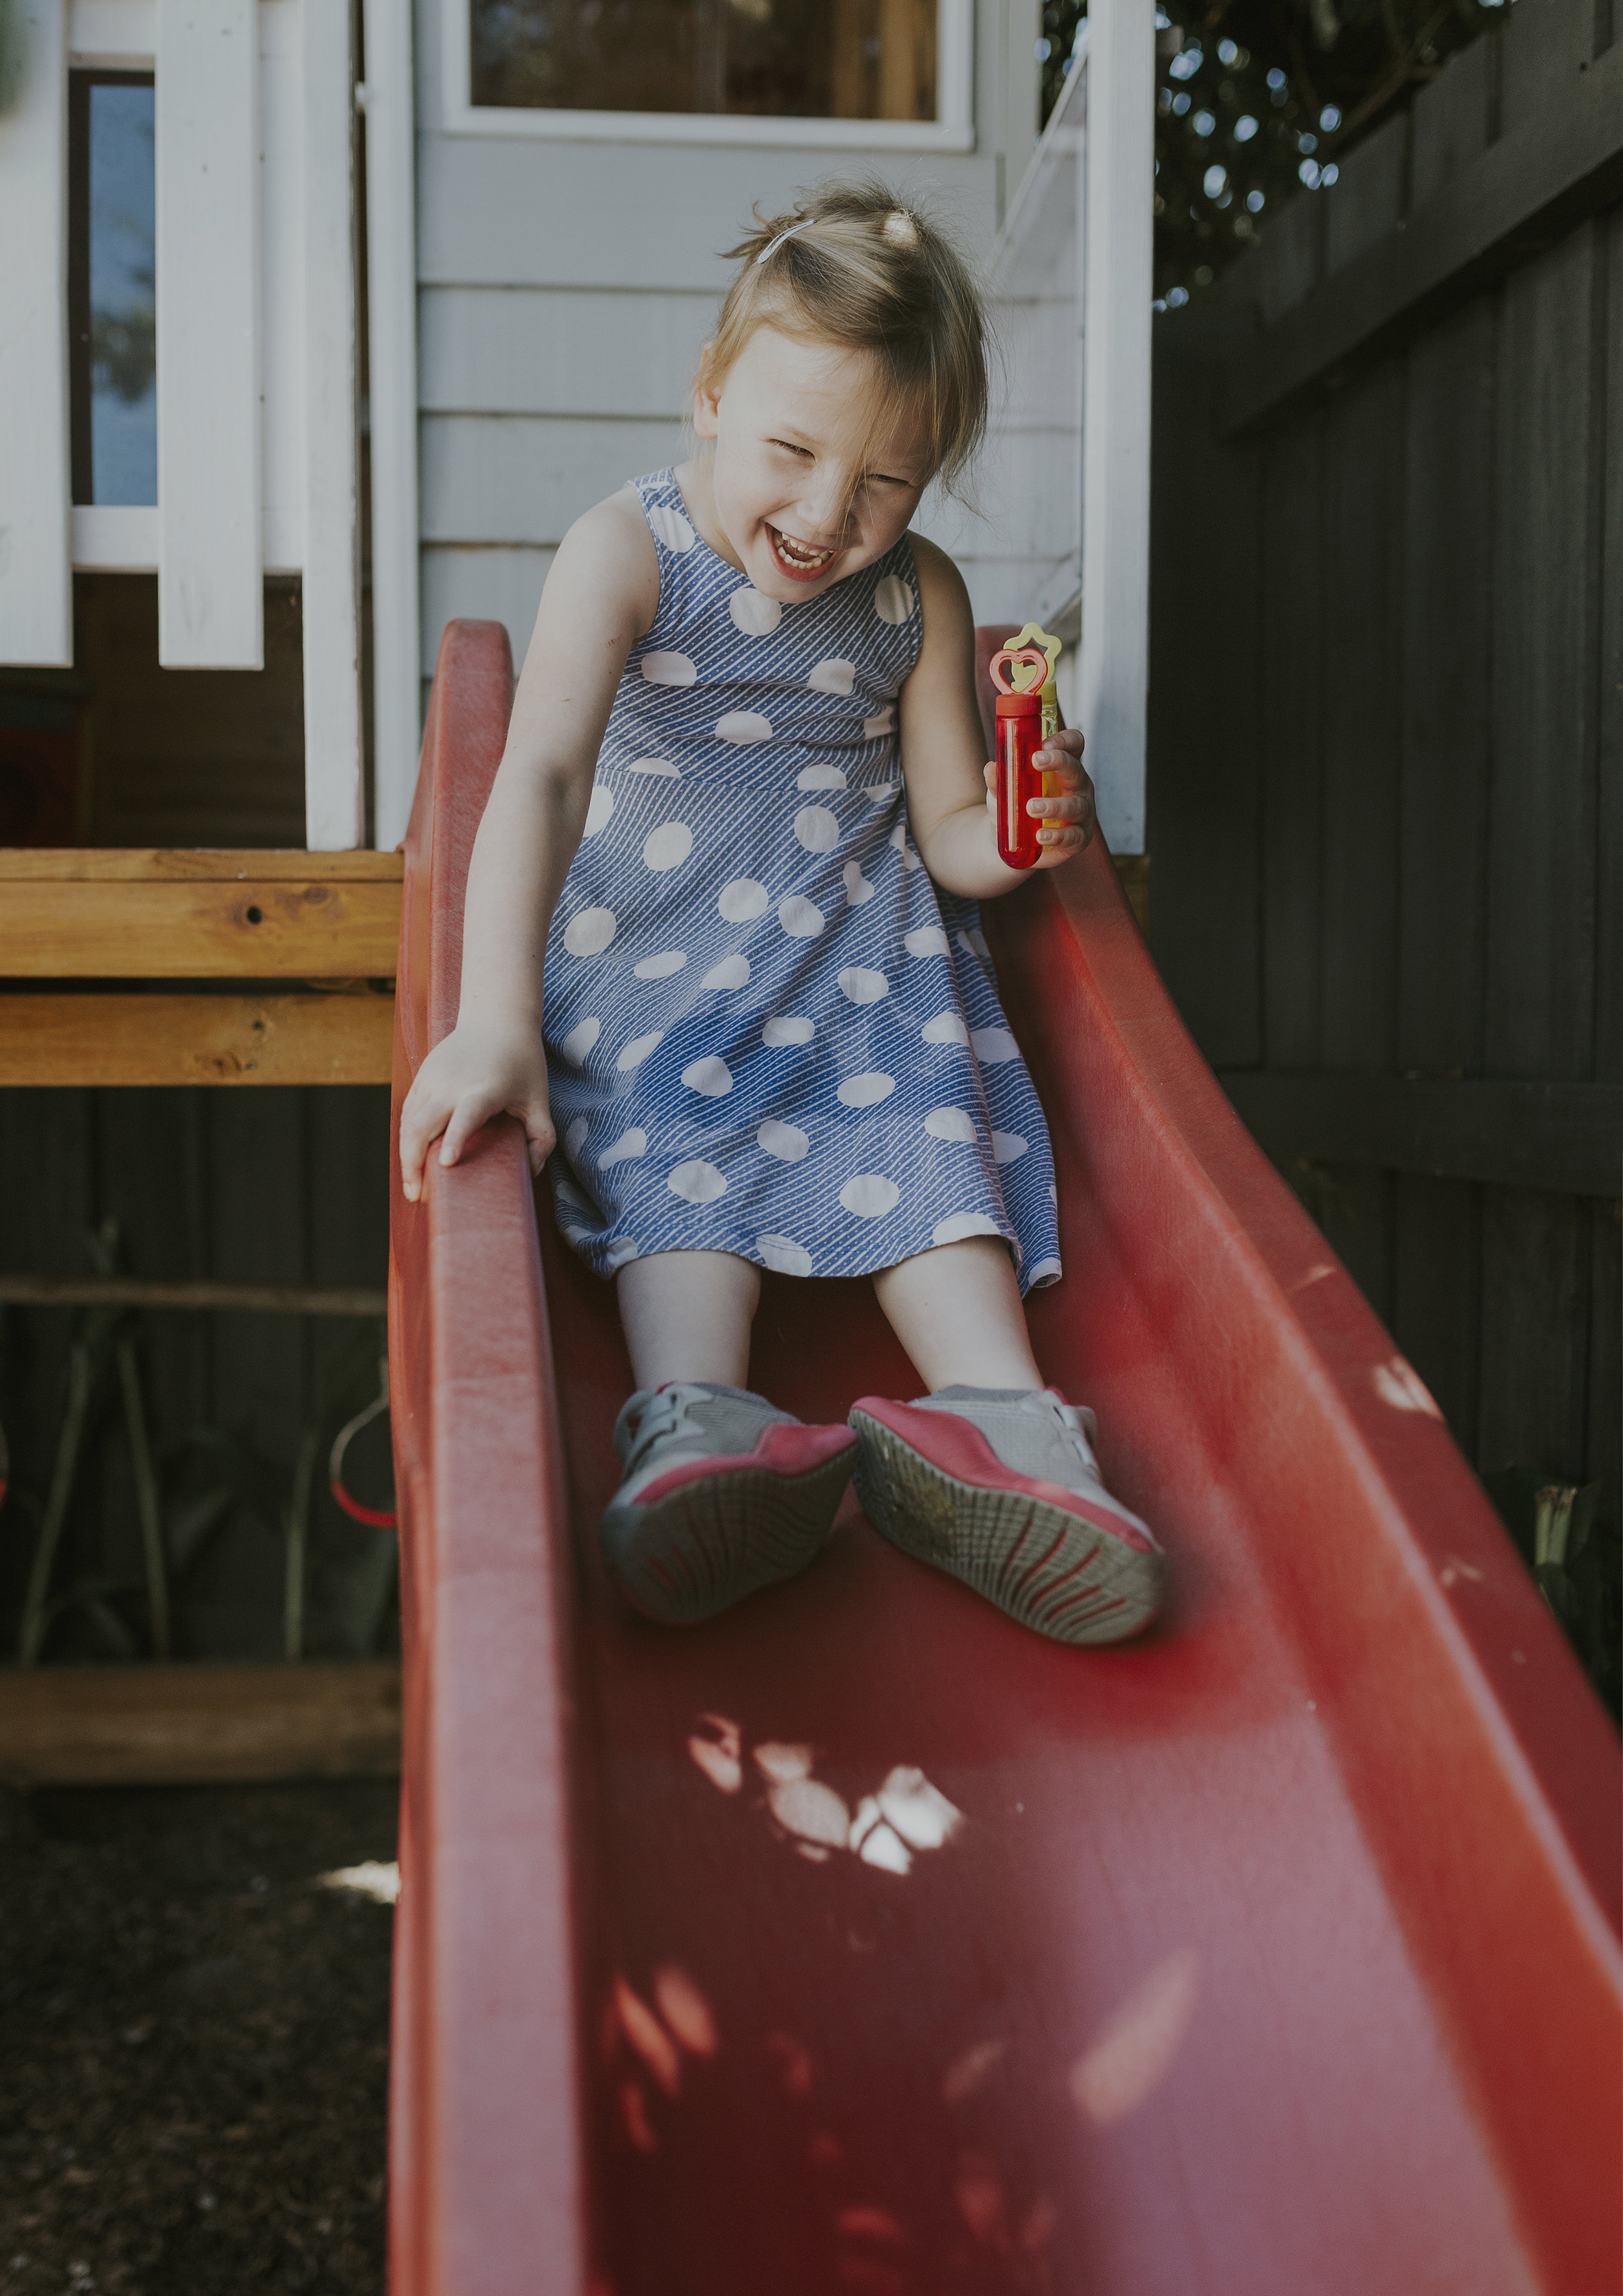 Child playing on the slide in their family's backyard